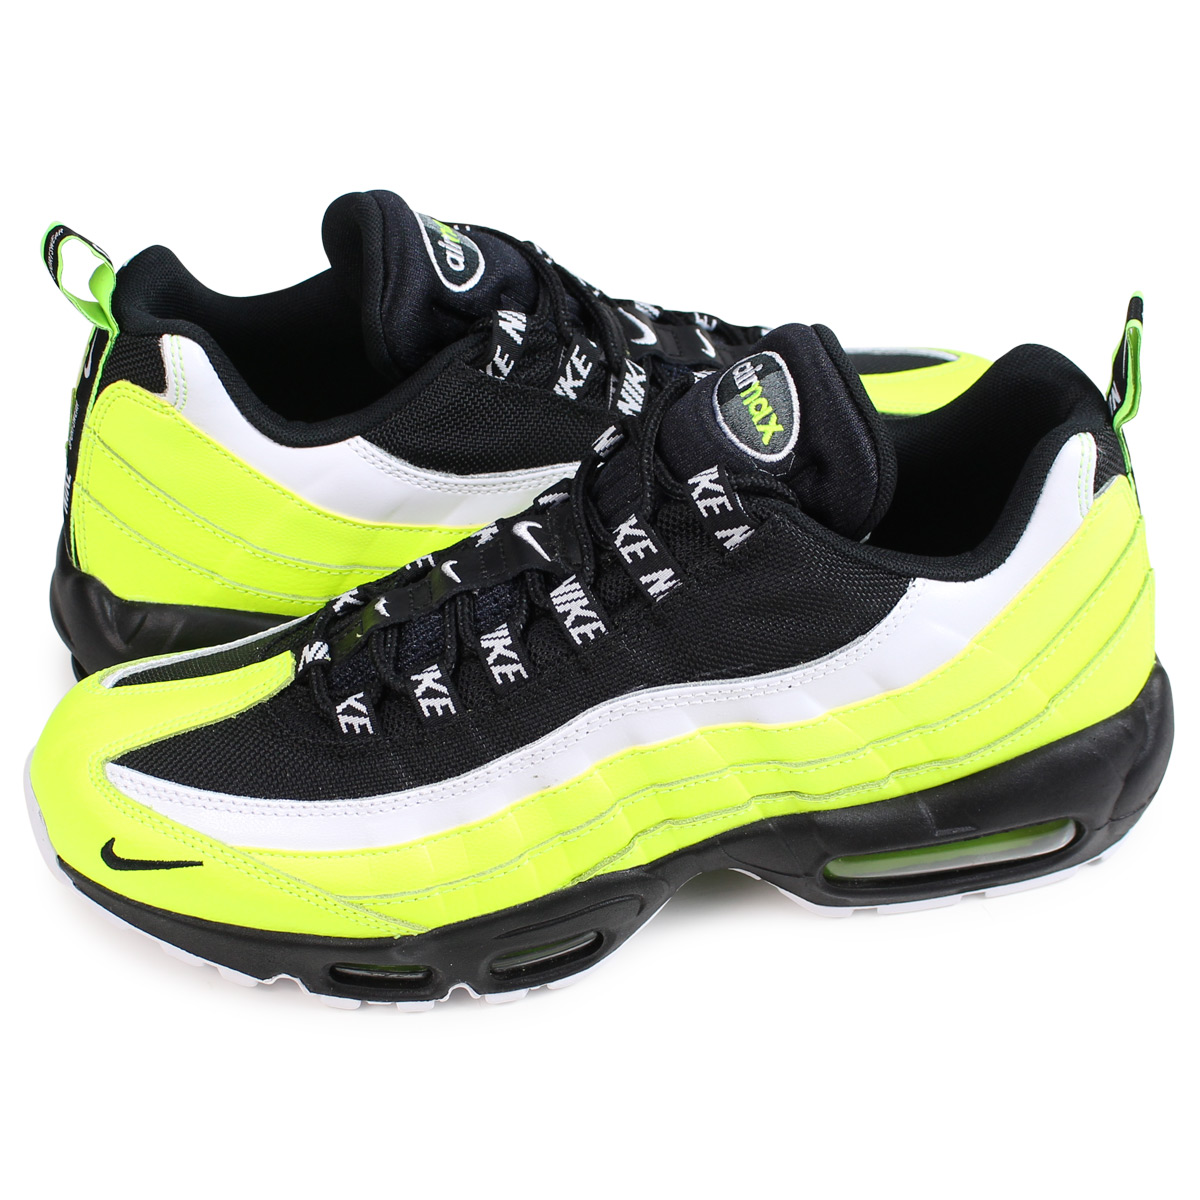 Nike NIKE Air Max 95 premium sneakers men AIR MAX 95 PREMIUM yellow 538,416 701